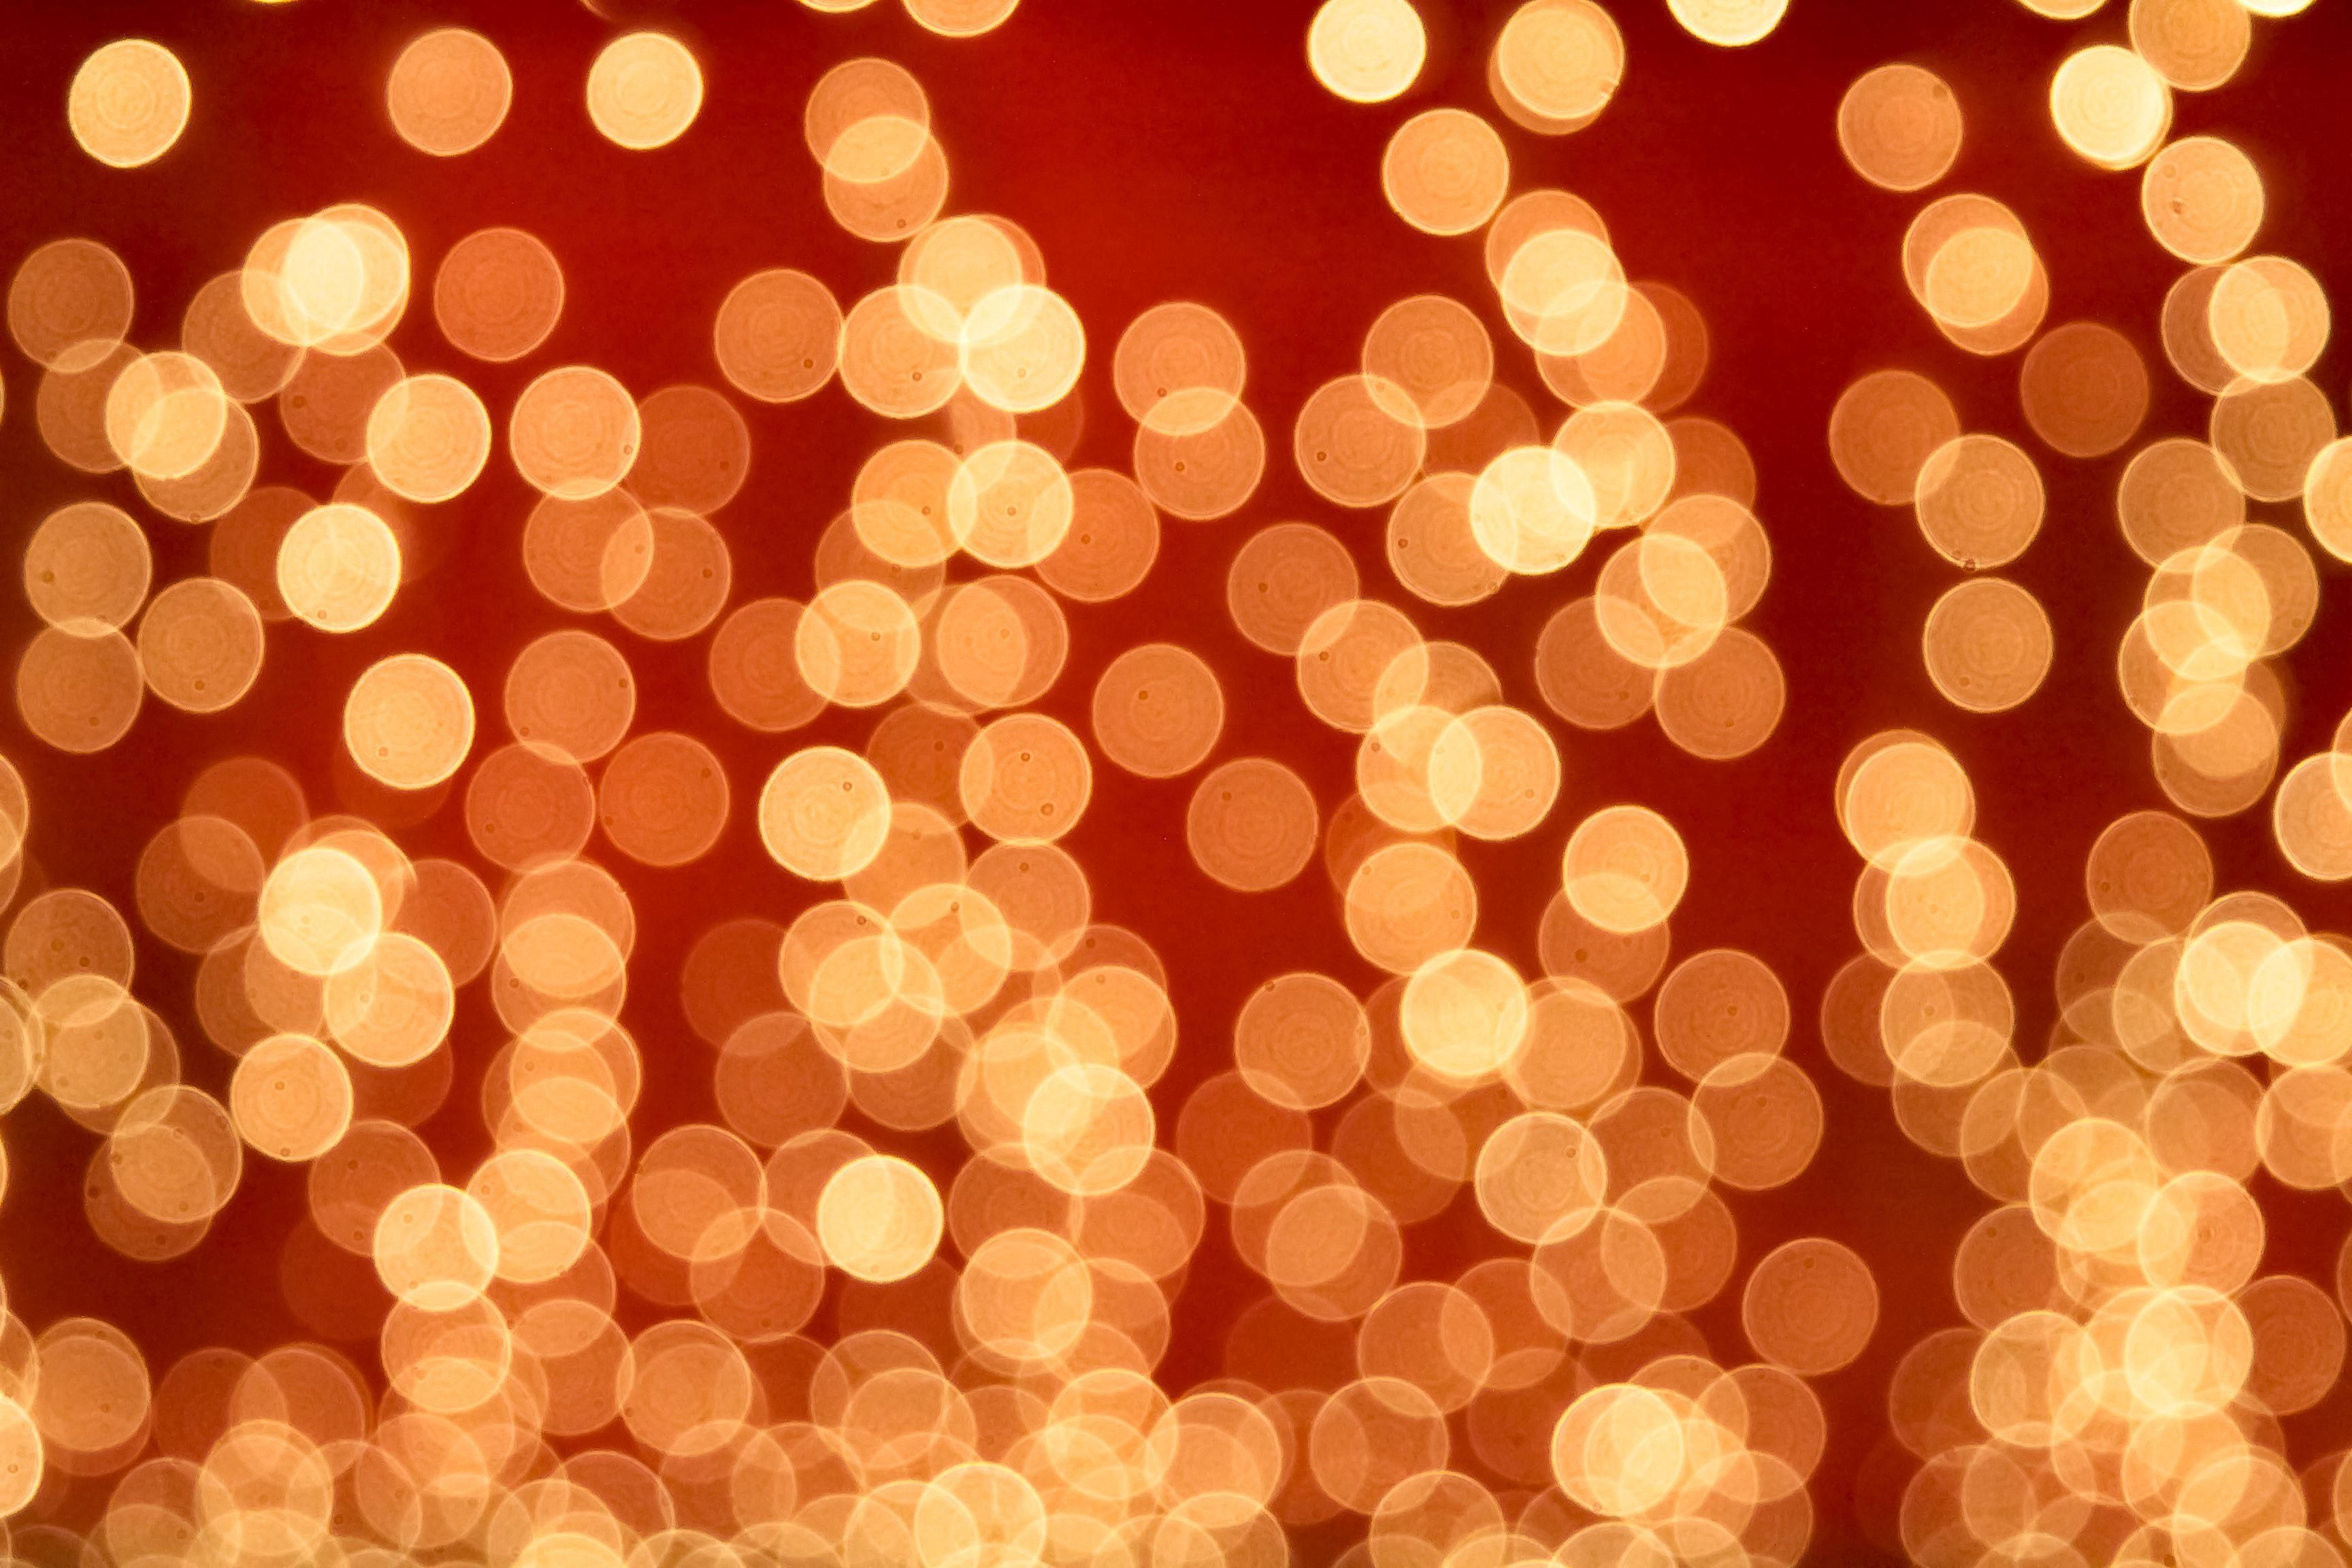 chinese new year background trp Yahoo Image Search